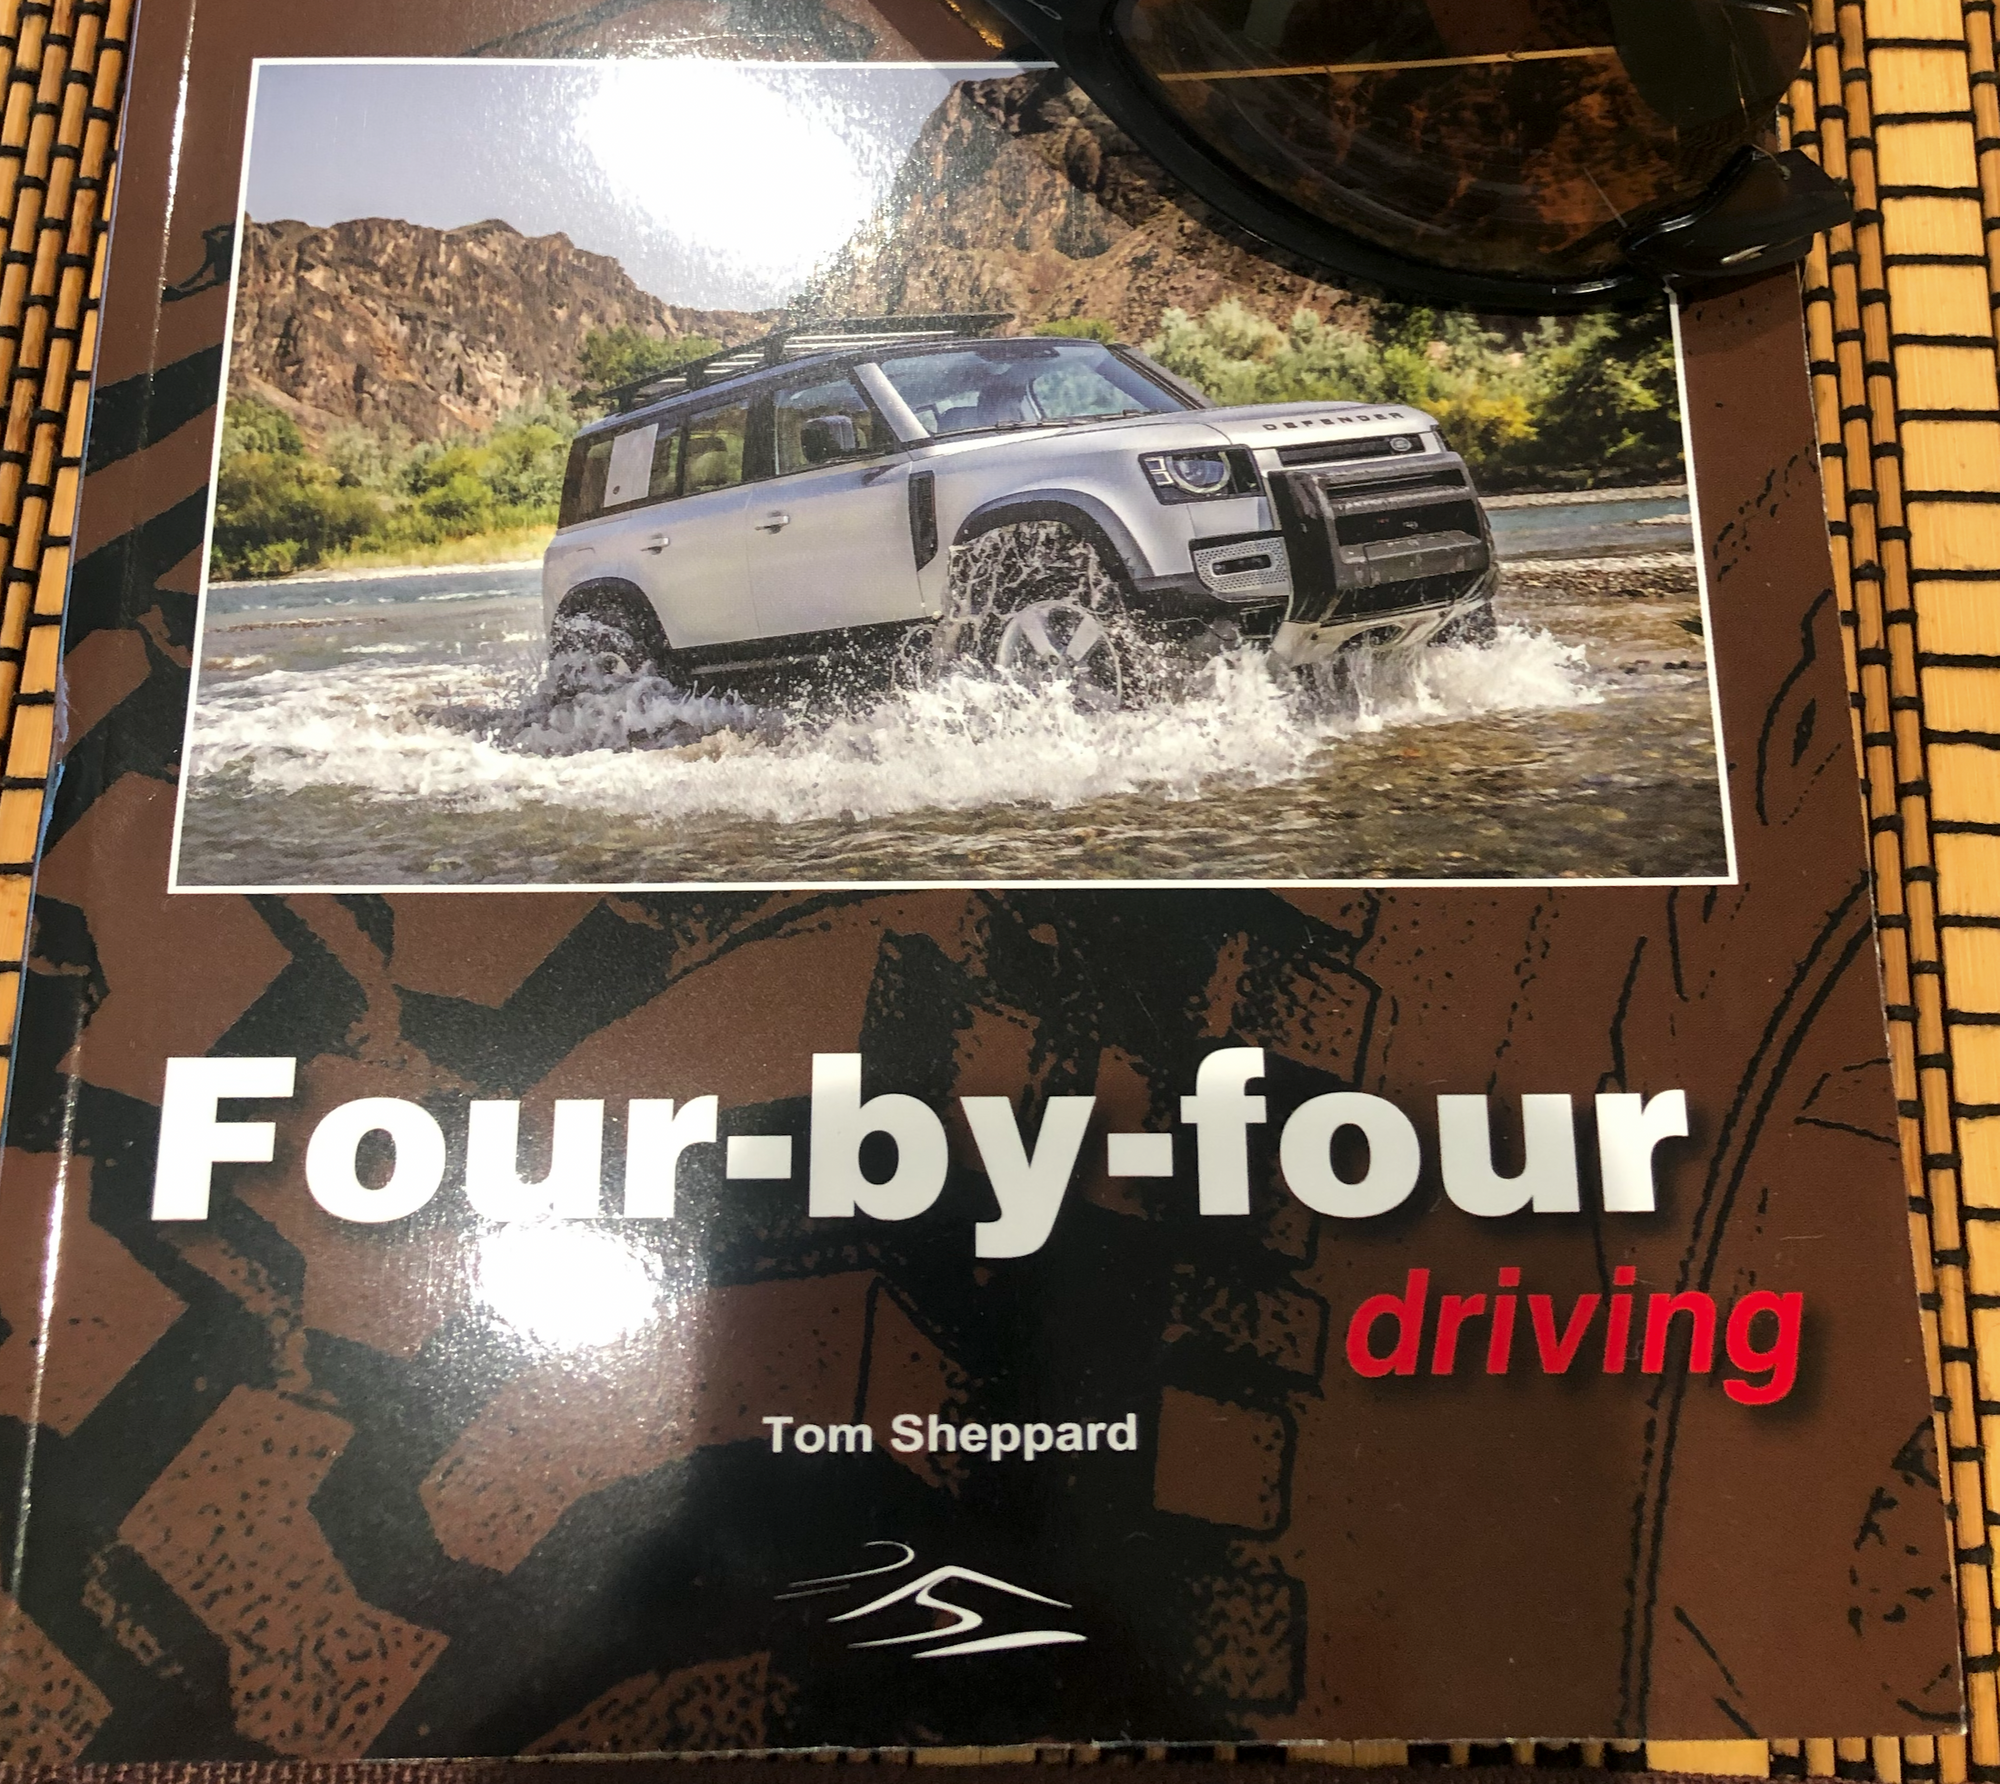 Four-by-four driving 6th edition is out!